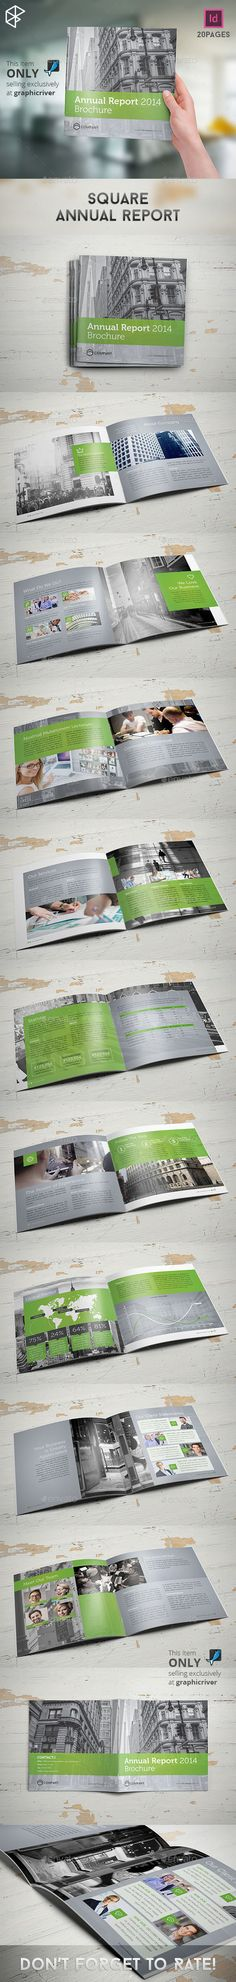 Annual Report design for an all-girl school Education Marketing - business annual report template